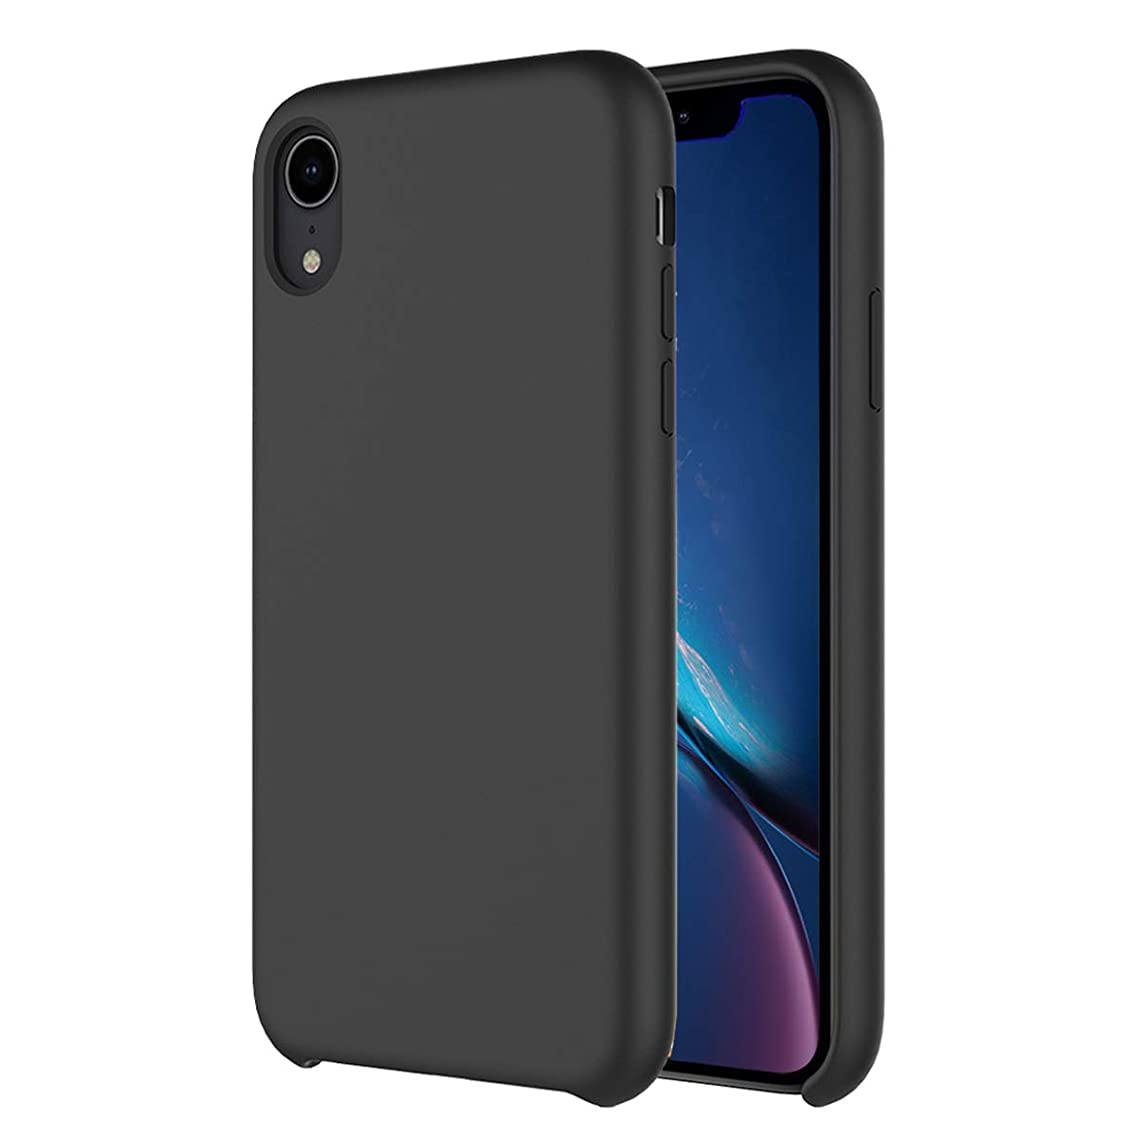 Orzero Liquid Silicone Gel Rubber Case for iPhone XR Full Body Shock Absorbing Ultra Slim Protective [Baby Skin Touch] -Black